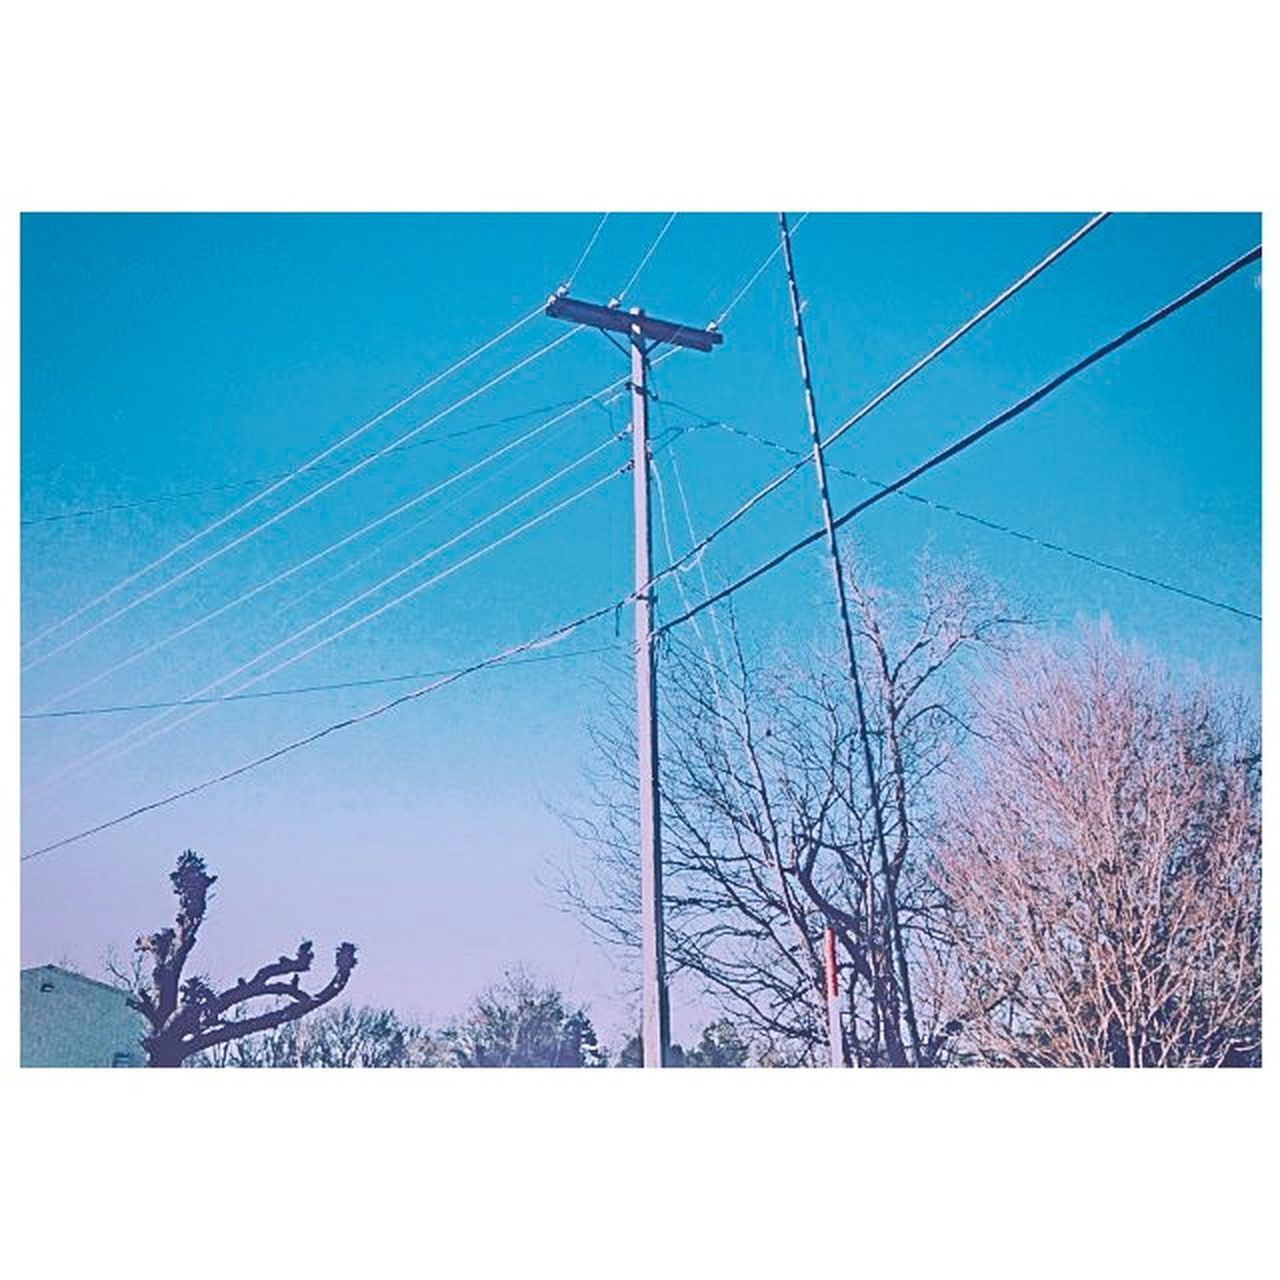 cable, fuel and power generation, electricity, outdoors, electricity pylon, day, power line, power supply, connection, bare tree, tree, silhouette, sky, low angle view, clear sky, blue, rural scene, cold temperature, winter, business, people, only men, wind turbine, nature, telephone line, one man only, adult